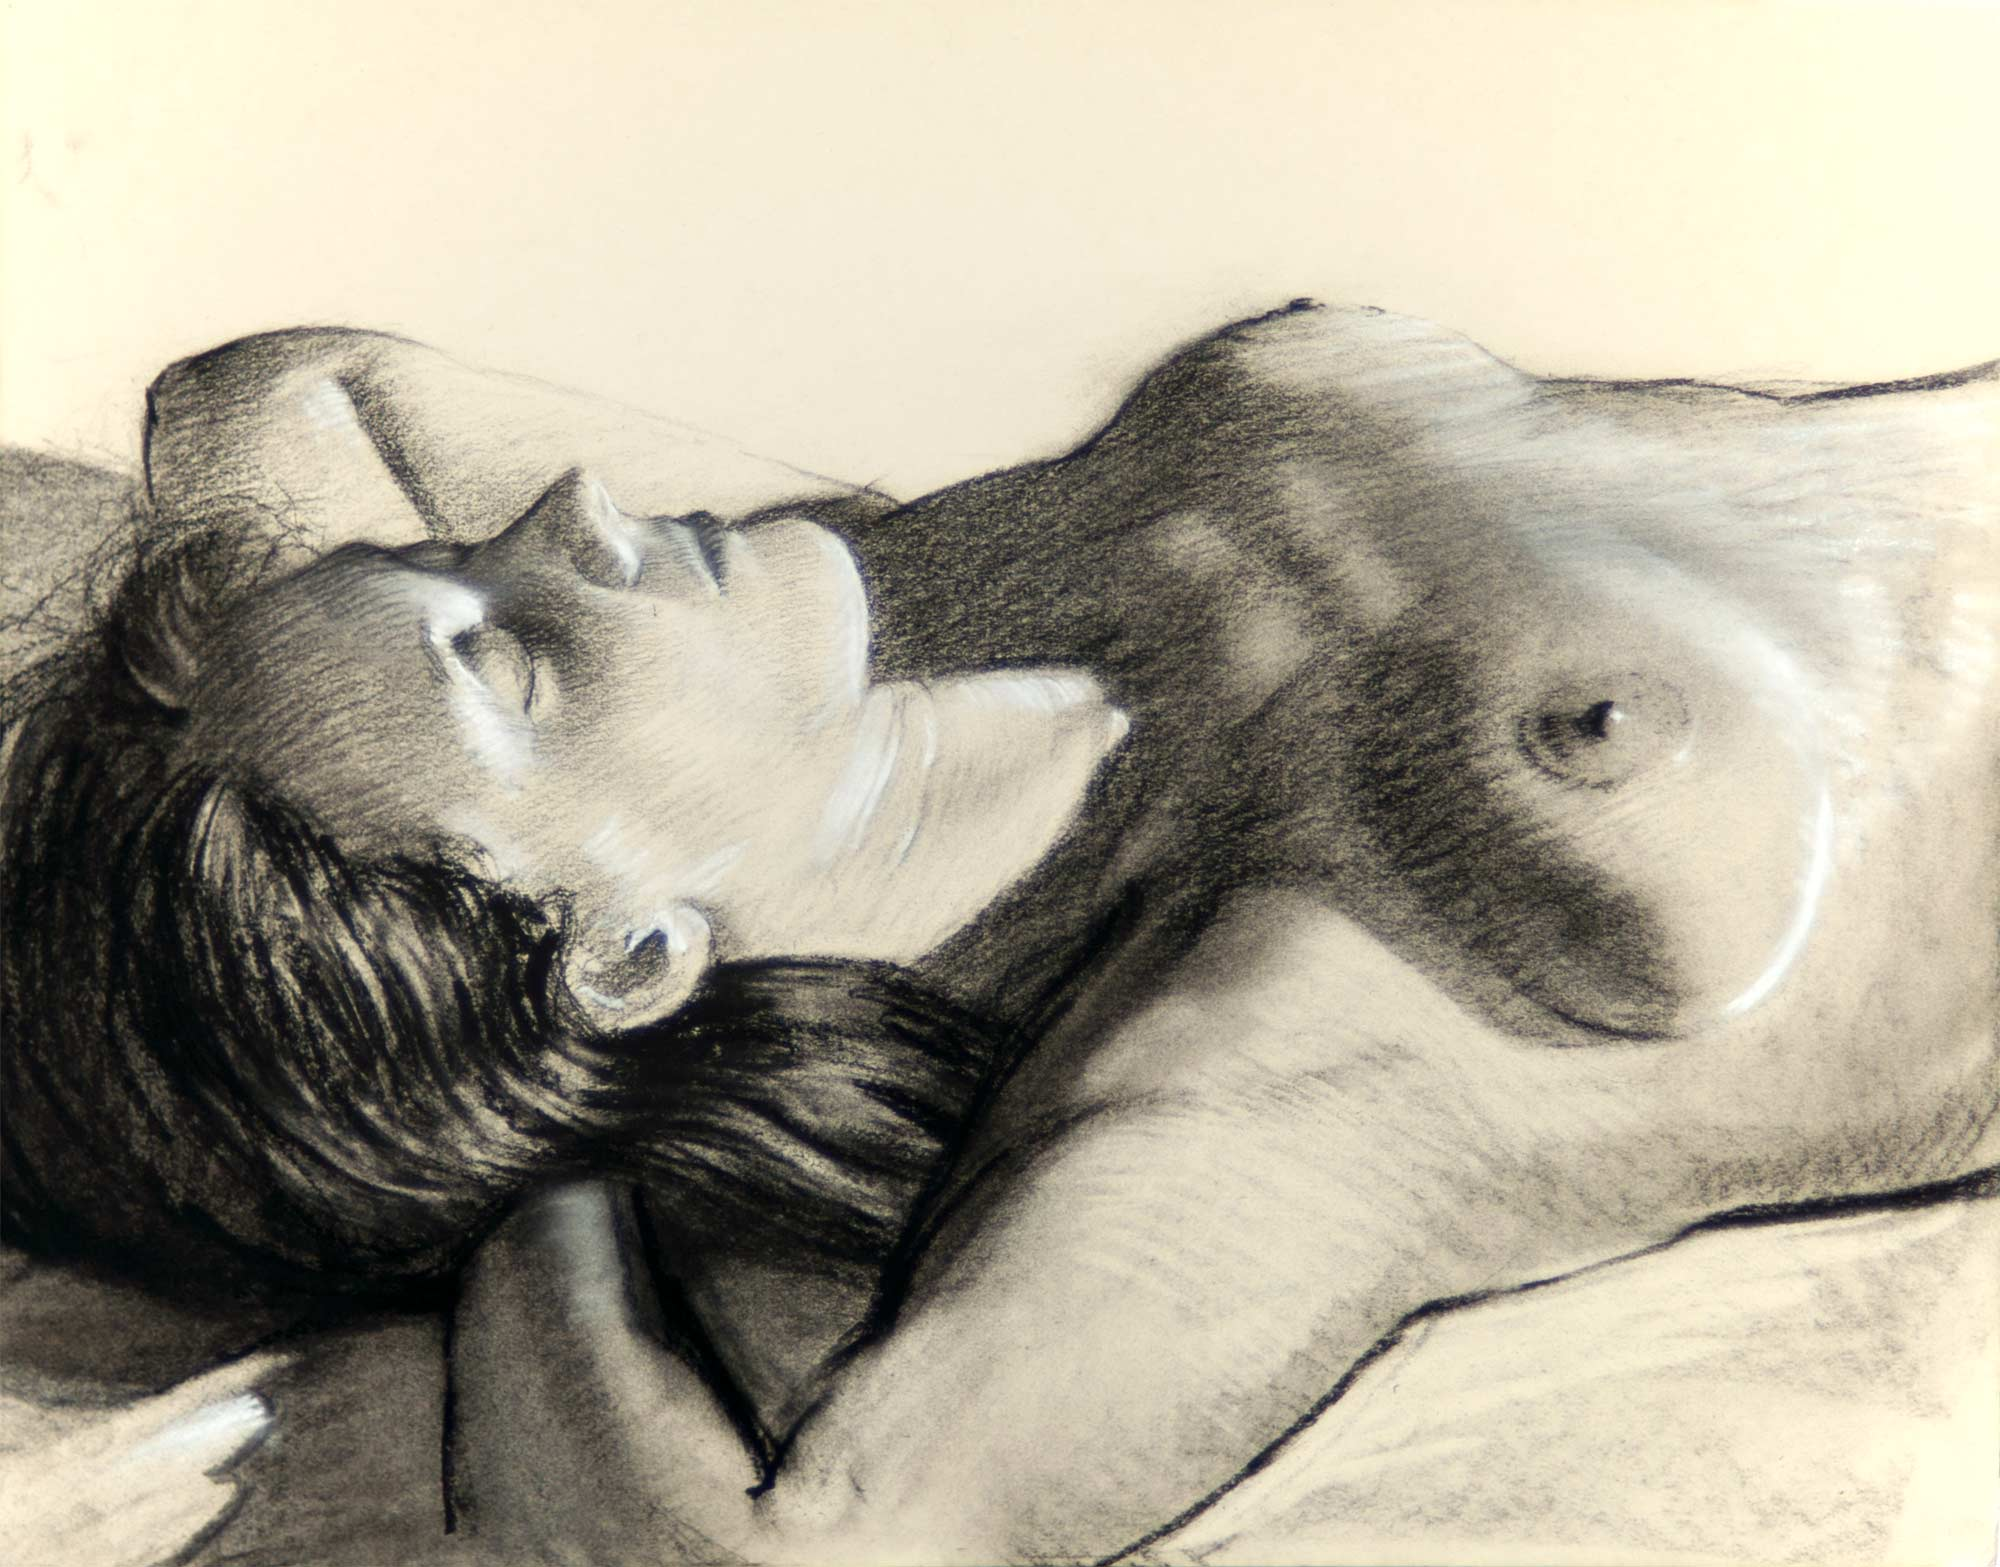 NW Reclining, Arms Behind Behind Her Head